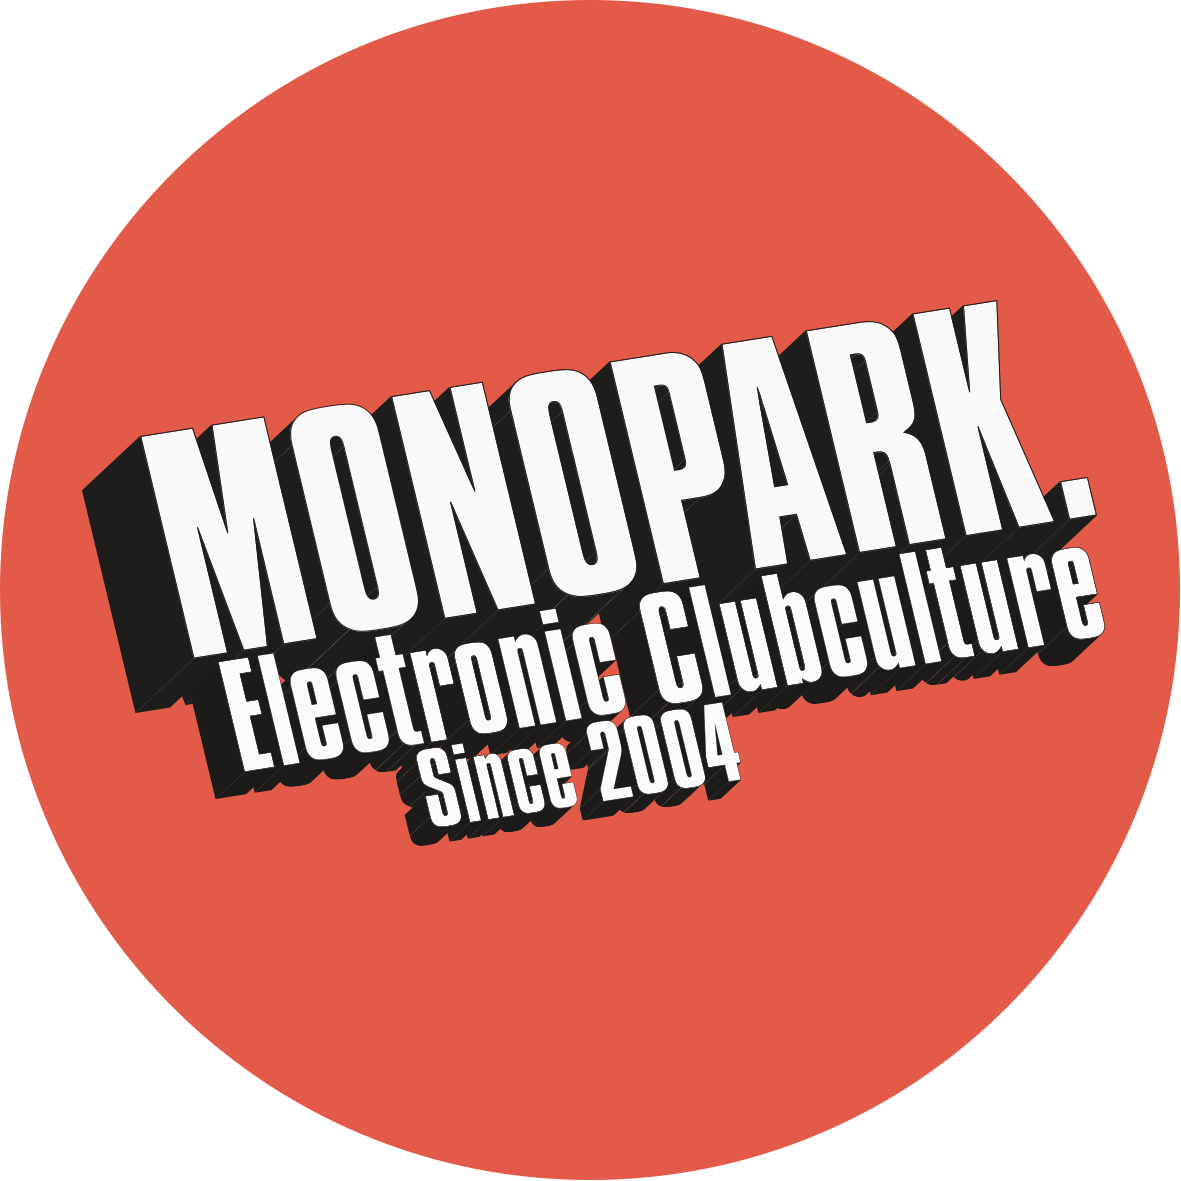 Monopark °Electronic Clubculture°